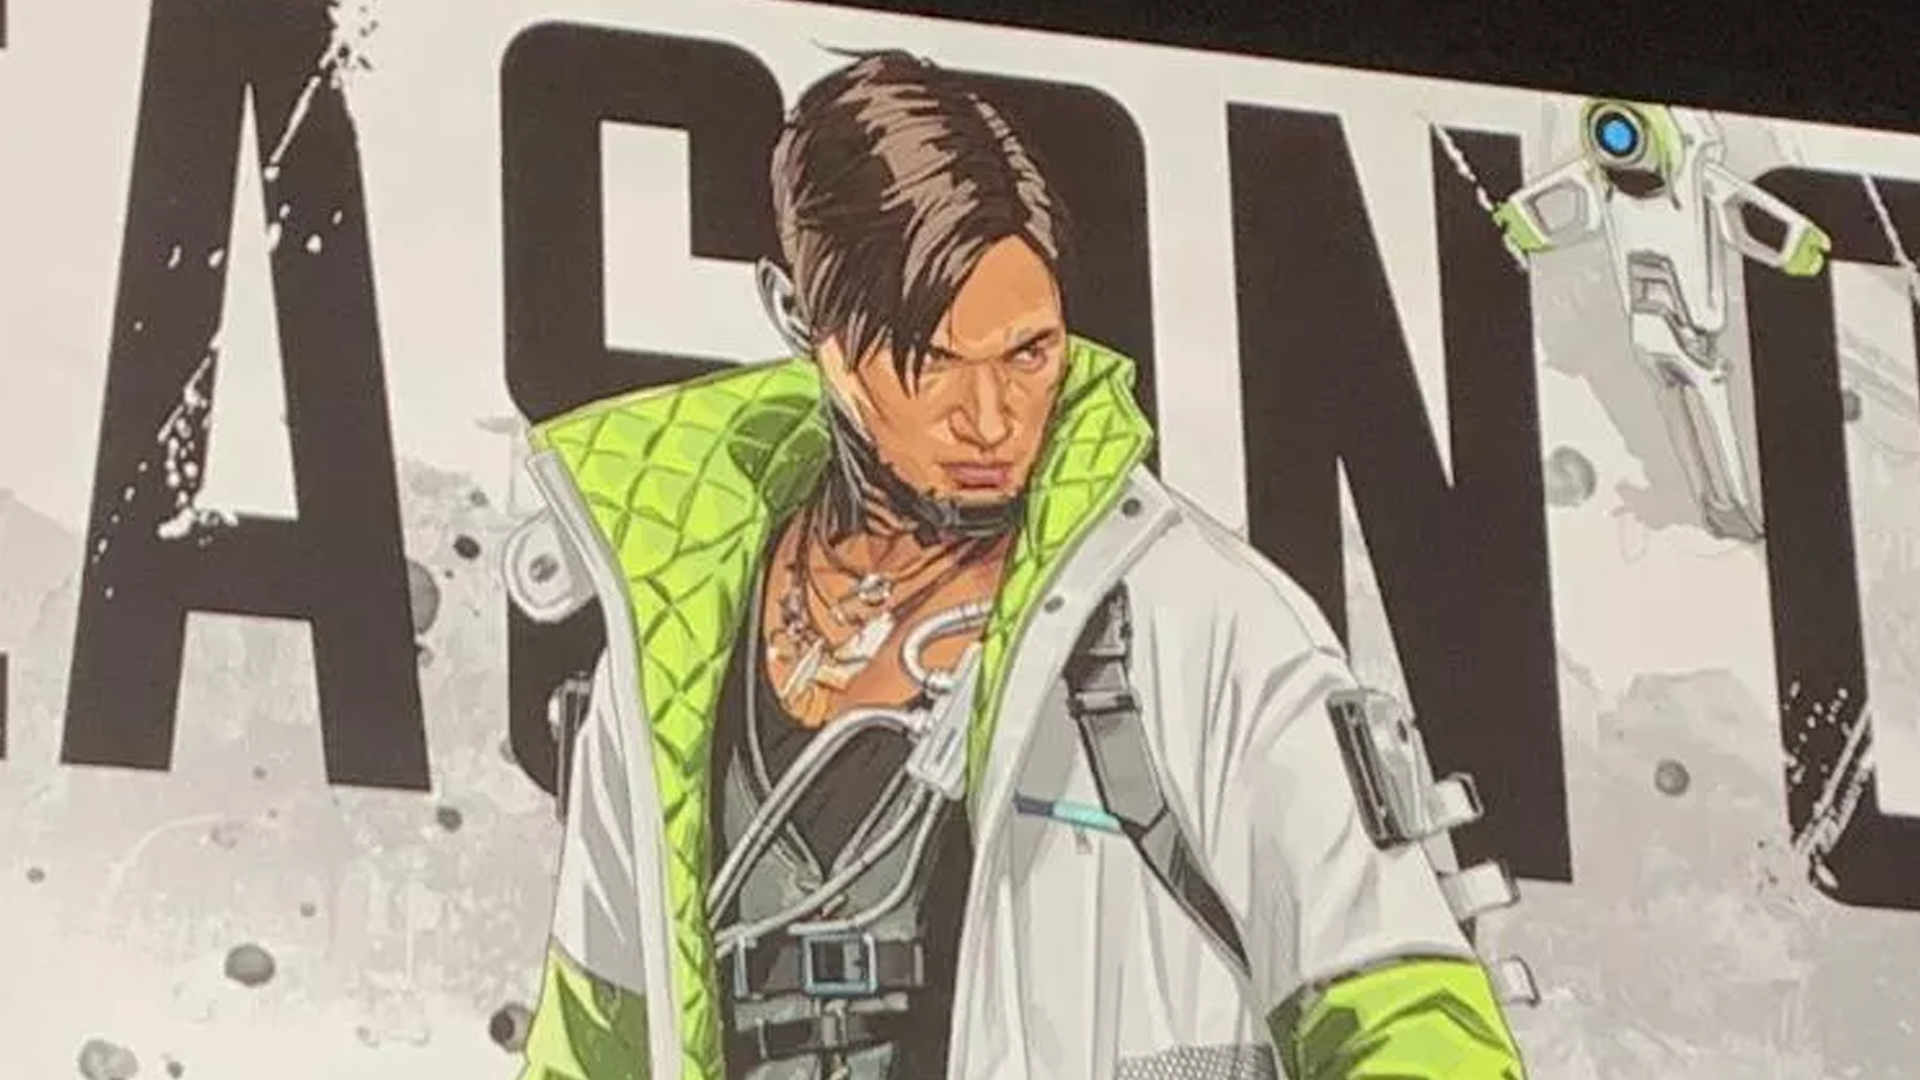 Apex legends leak new character crypto charge rifle halloween skins